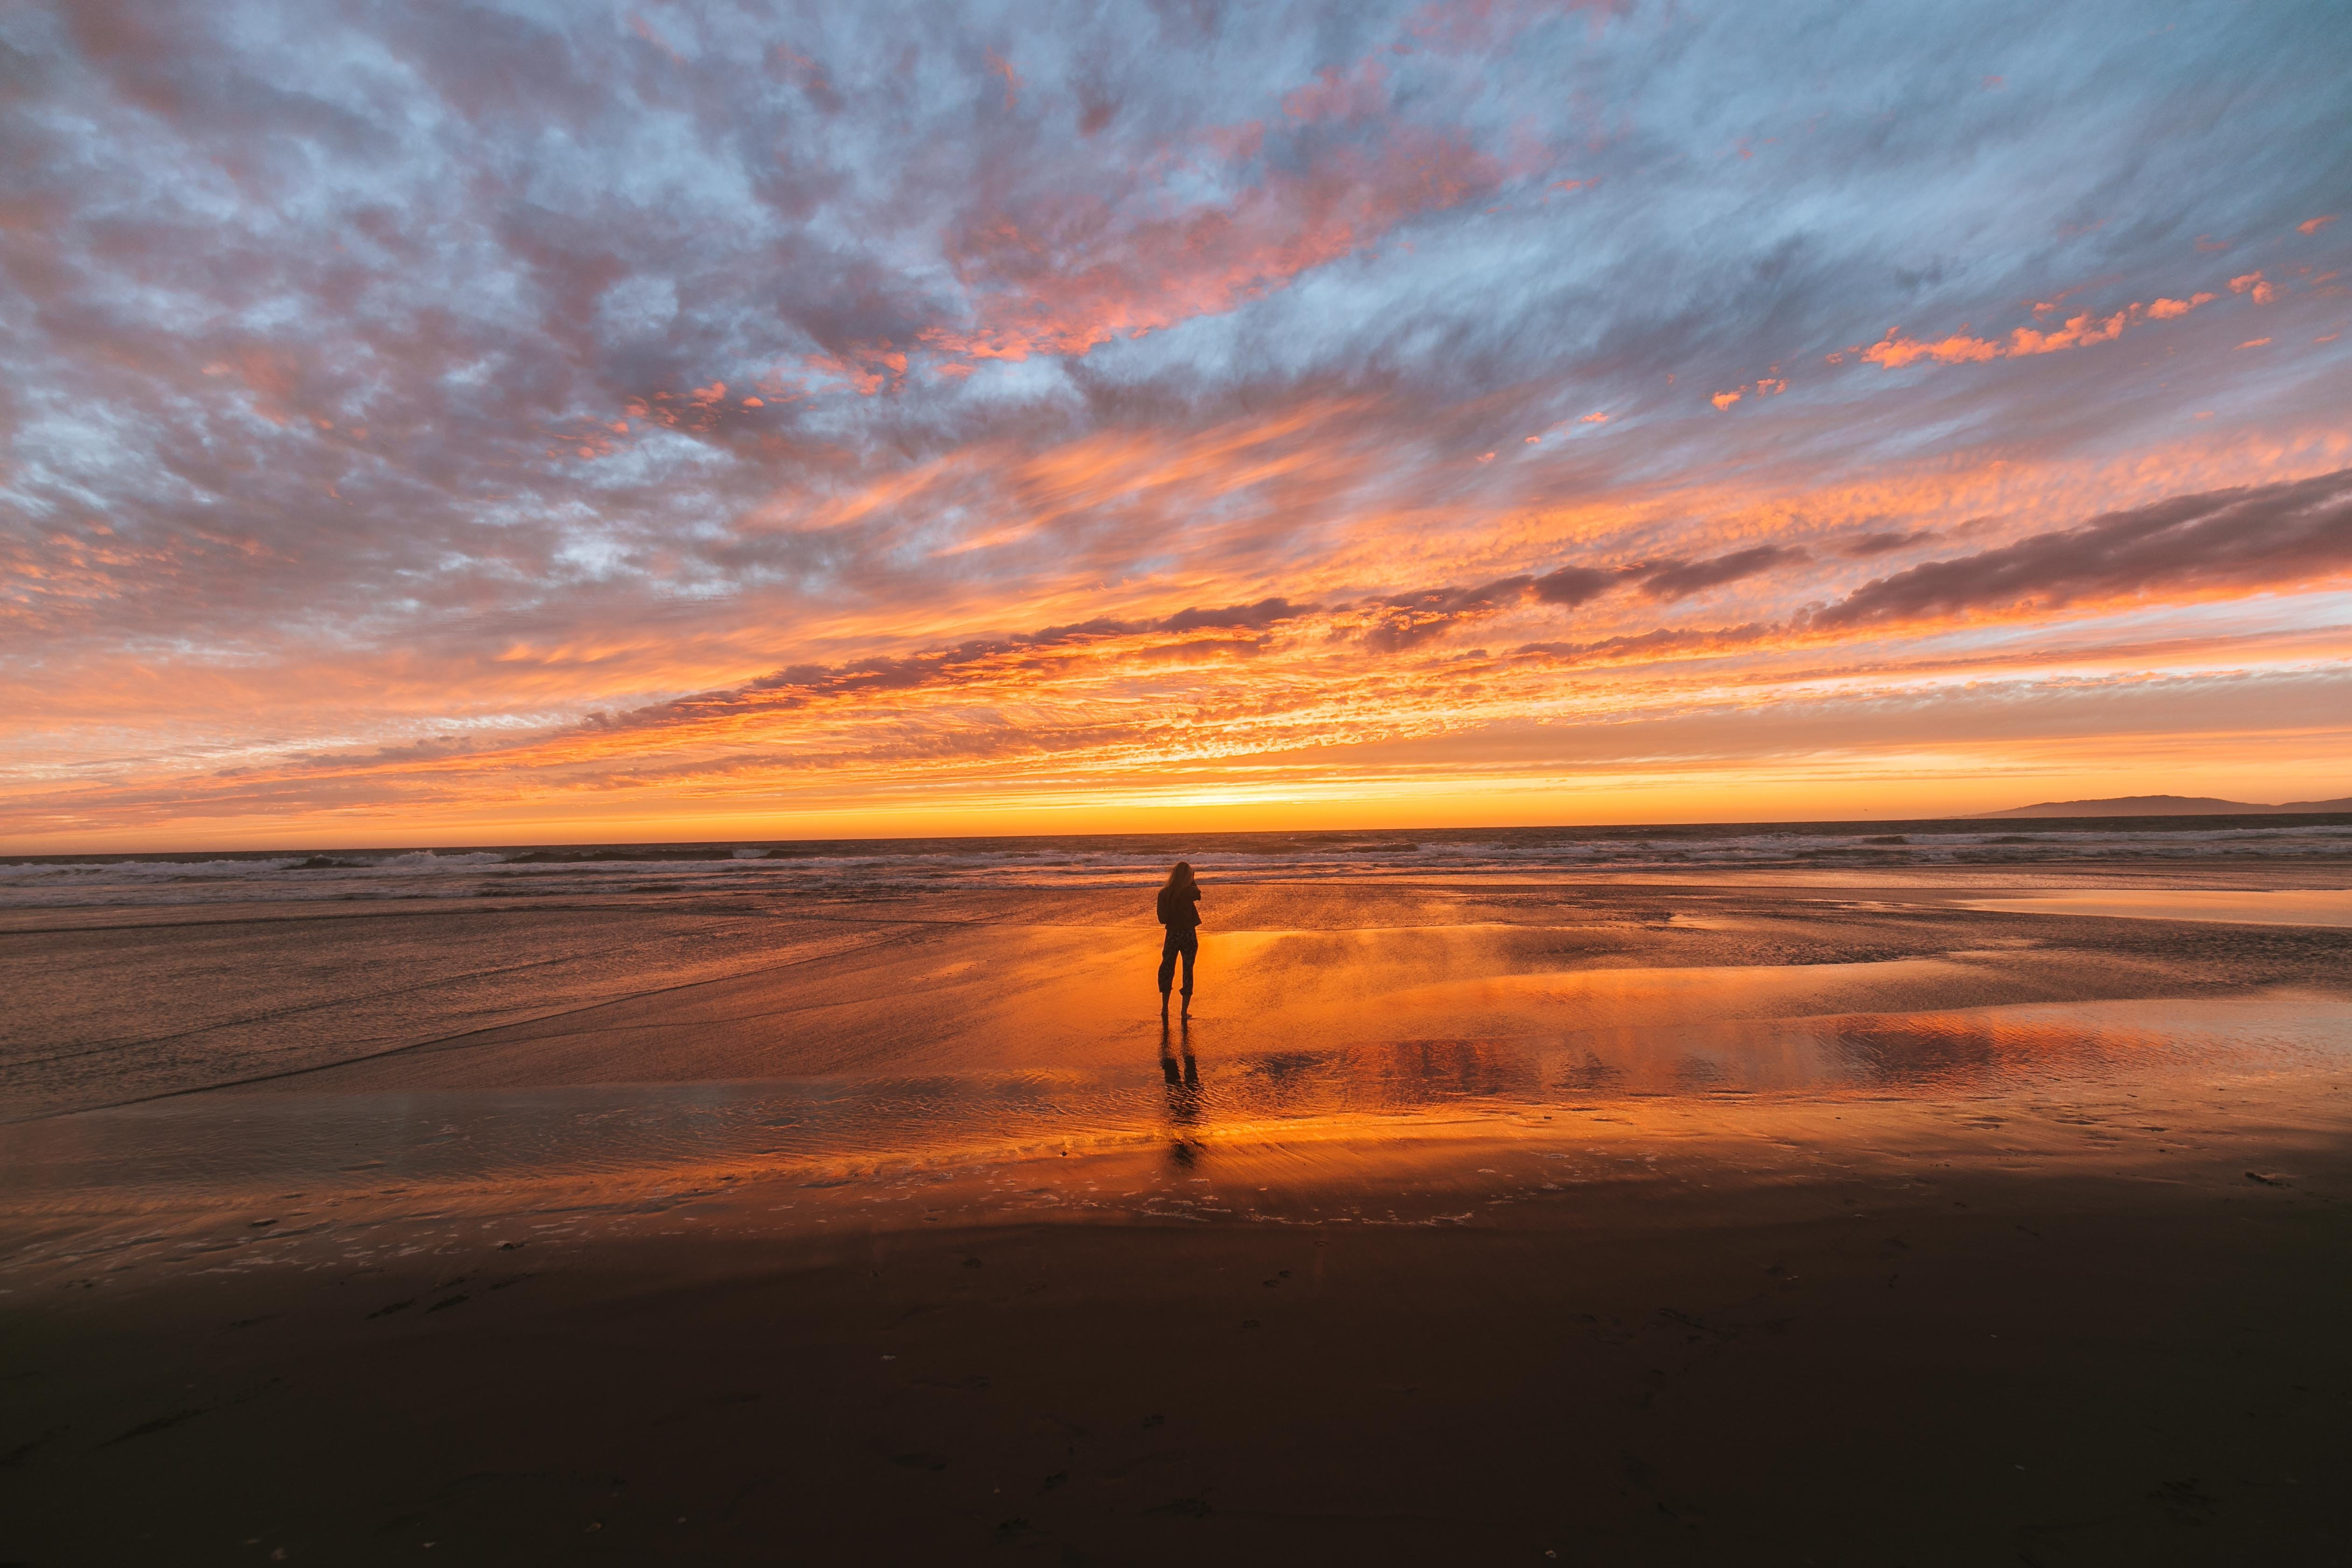 Linda found herself on the beach as the sun rose   Source: Pexels